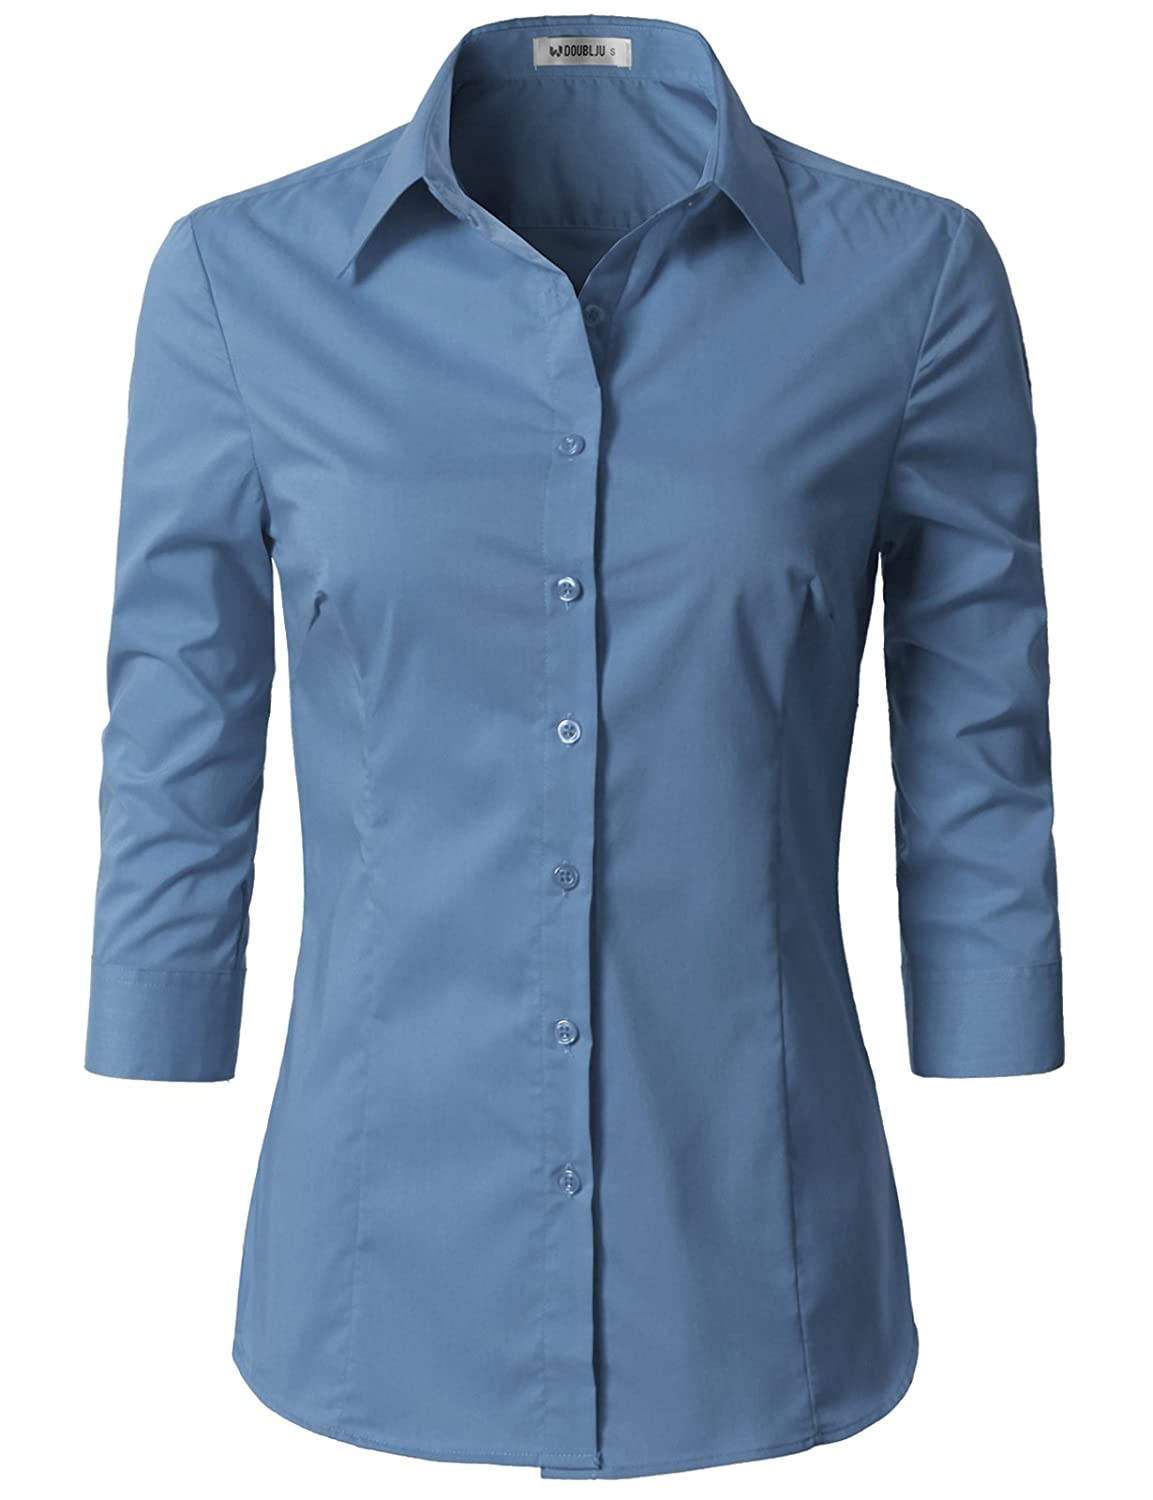 7f10c129497  CWTSTS09 - Womens Basic Slim Fit Simple 3 4 Sleeve Button Down Shirt With Plus  Size Features Button Down Front